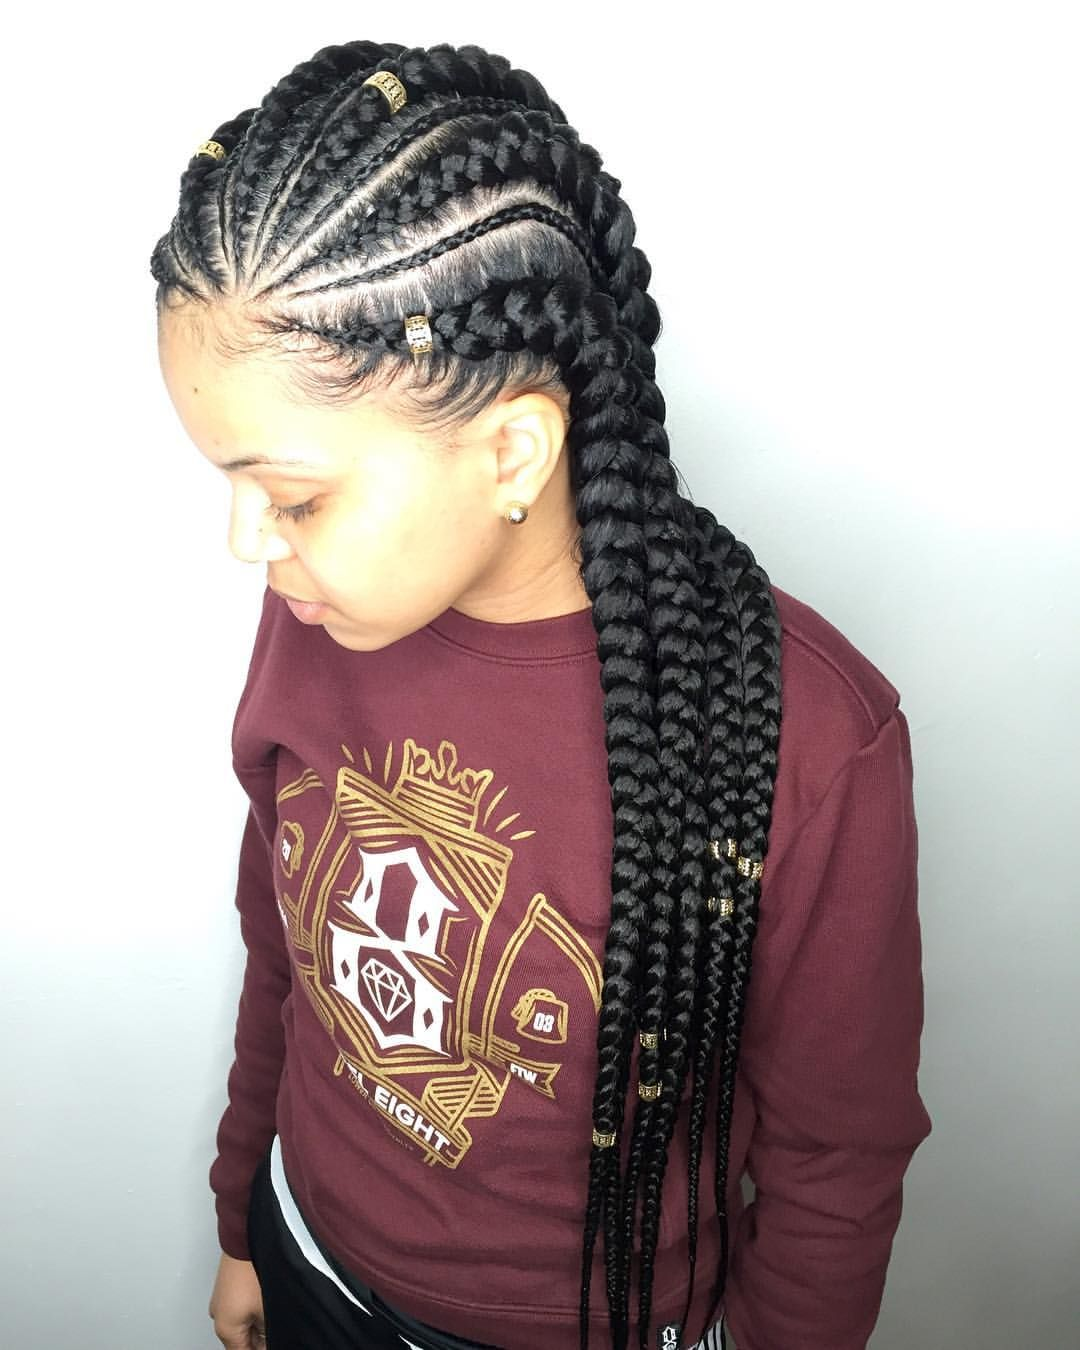 142 Likes, 3 Comments - Salon Ramsey (@qthebraider) on ...